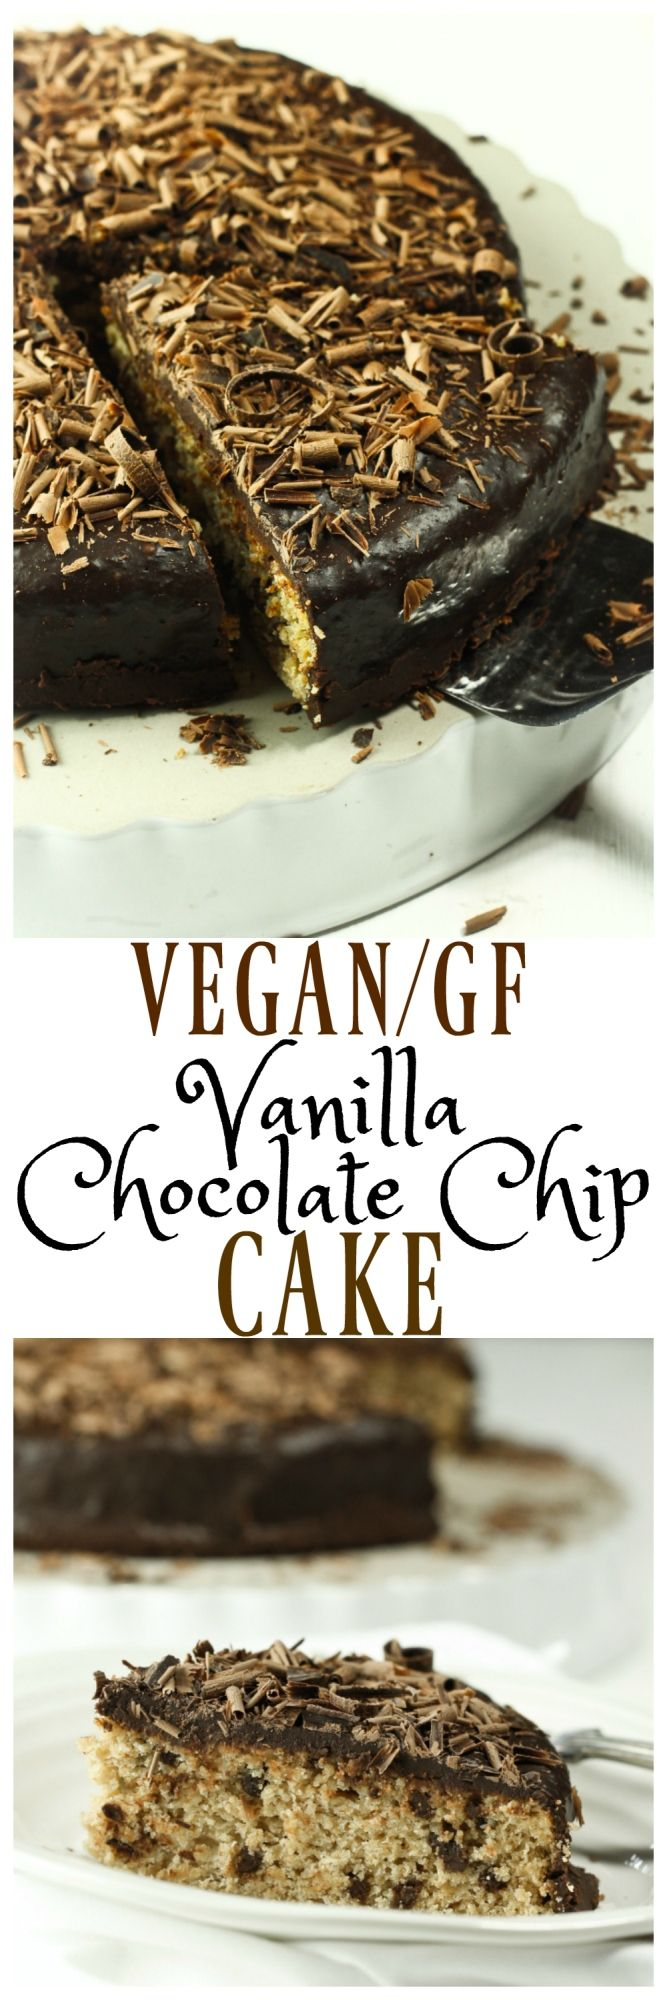 The best Vegan, Gluten-free and oil-free Vanilla Chocolate Chip Cake with Chocolate Ganache. Dairy-free and egg-free, but so decadent, rich, easy to make and just 8 ingredients! via @thevegan8